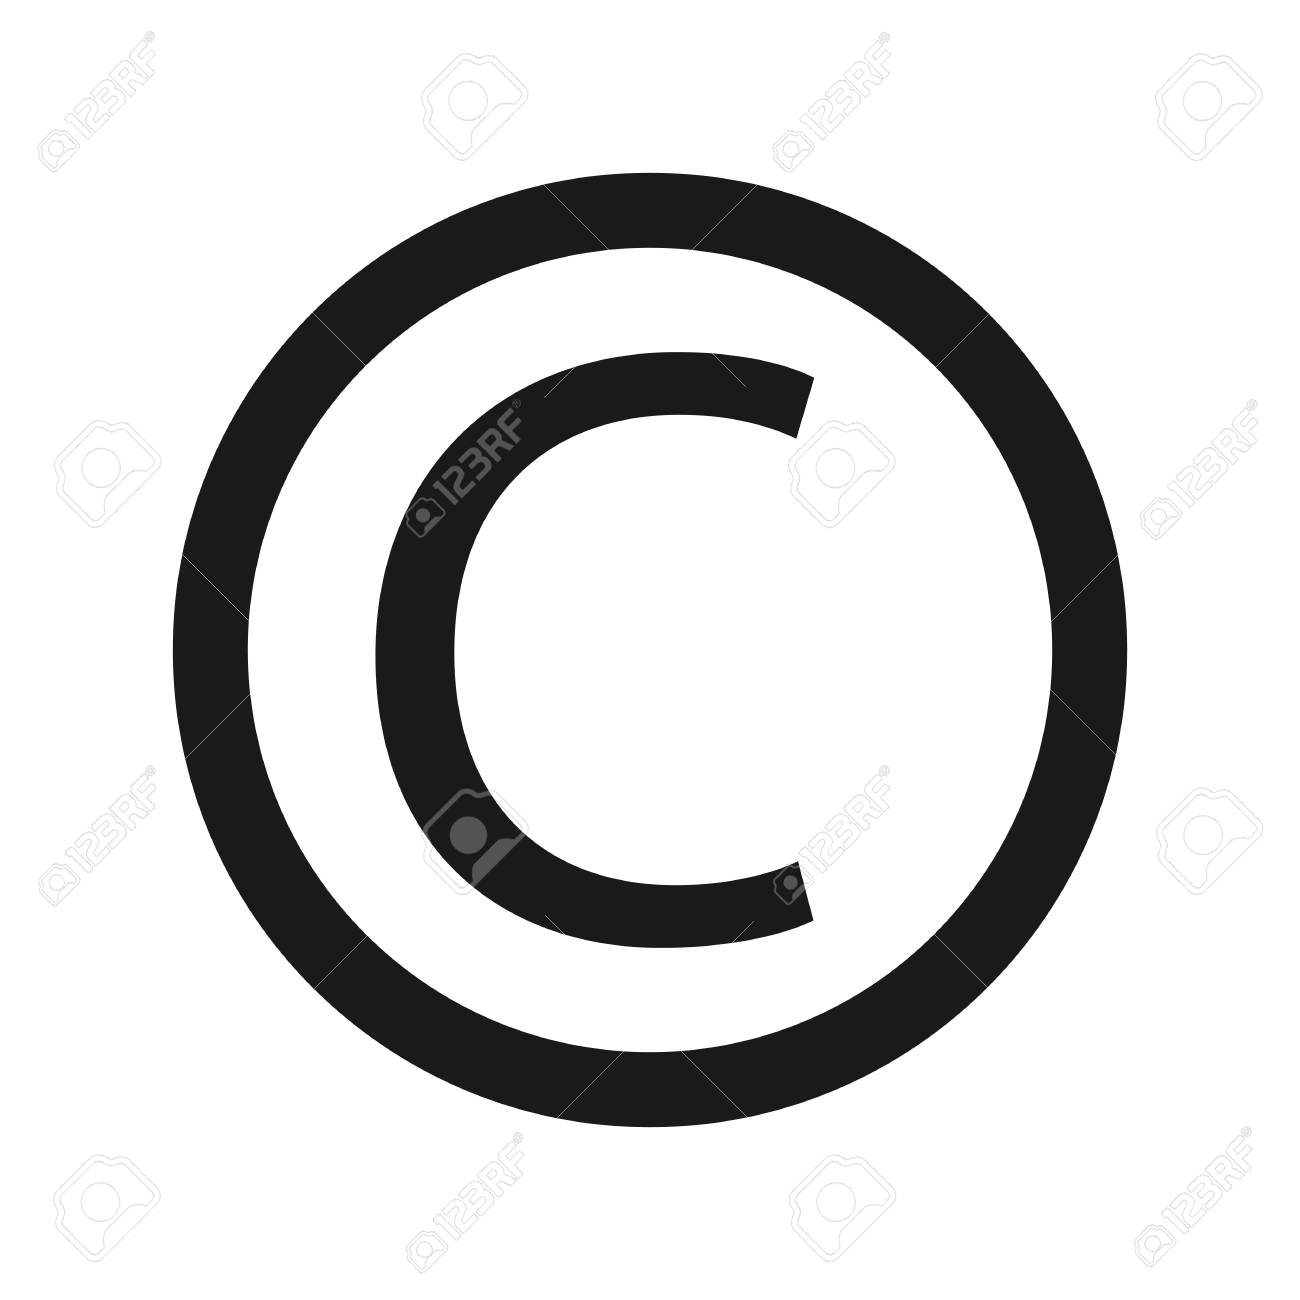 Copyright Symbol Icon Letter C Royalty Free Cliparts Vectors And